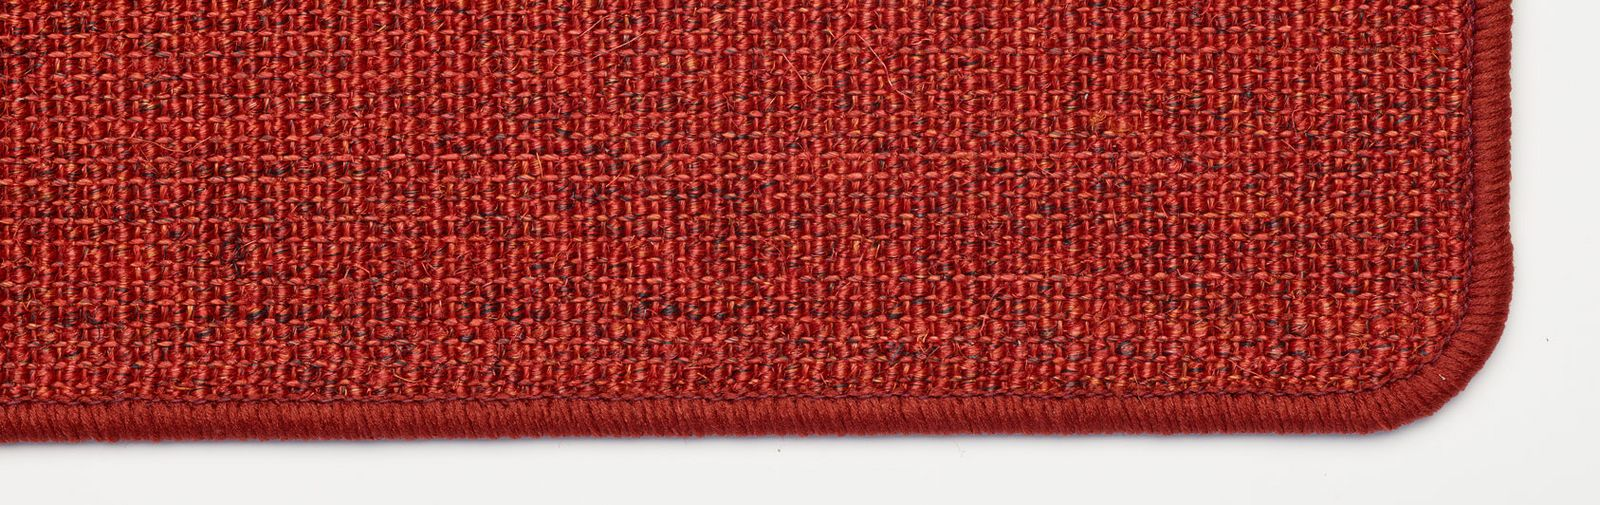 church carpet sisal color red color code 7401